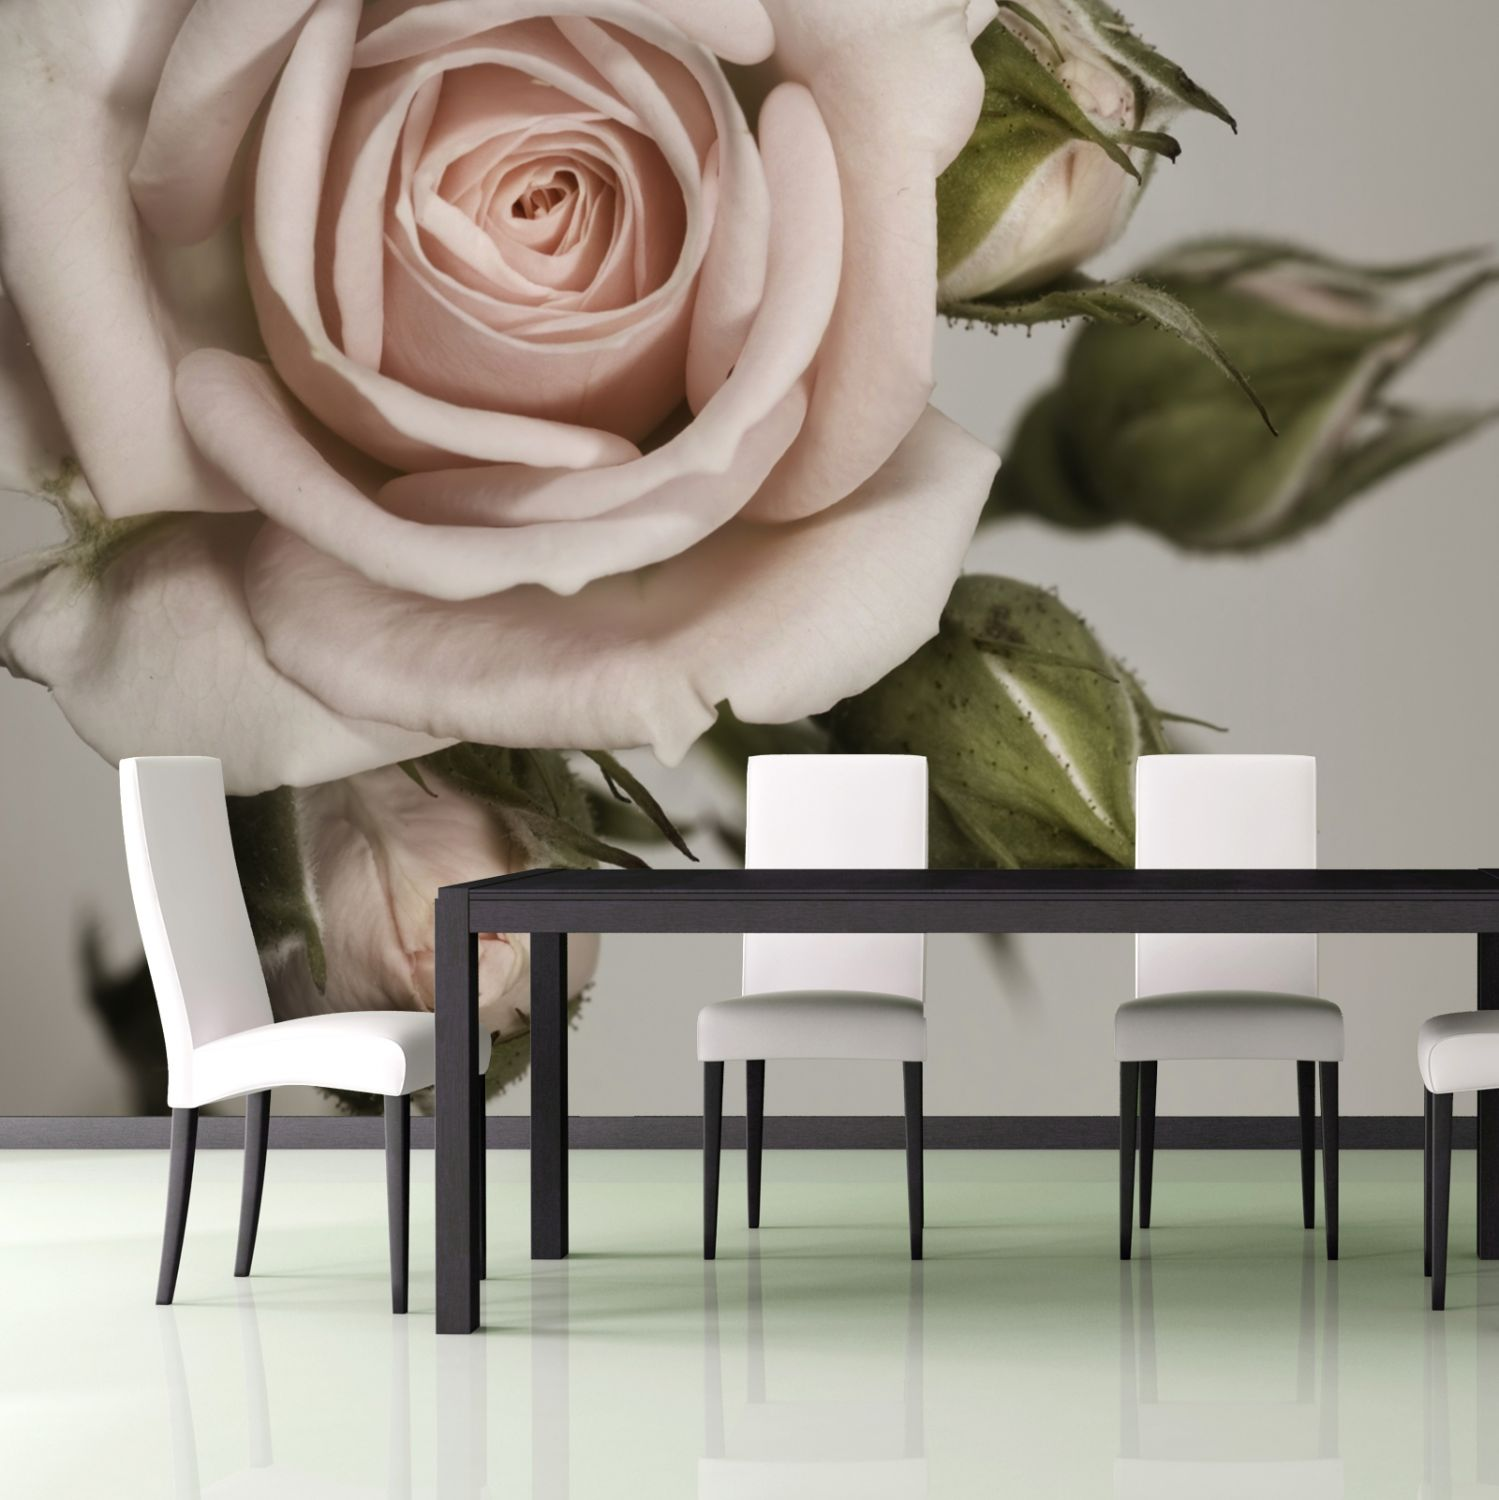 vliestapete xxl poster fototapete natur blumen rosen landhausstil ebay. Black Bedroom Furniture Sets. Home Design Ideas